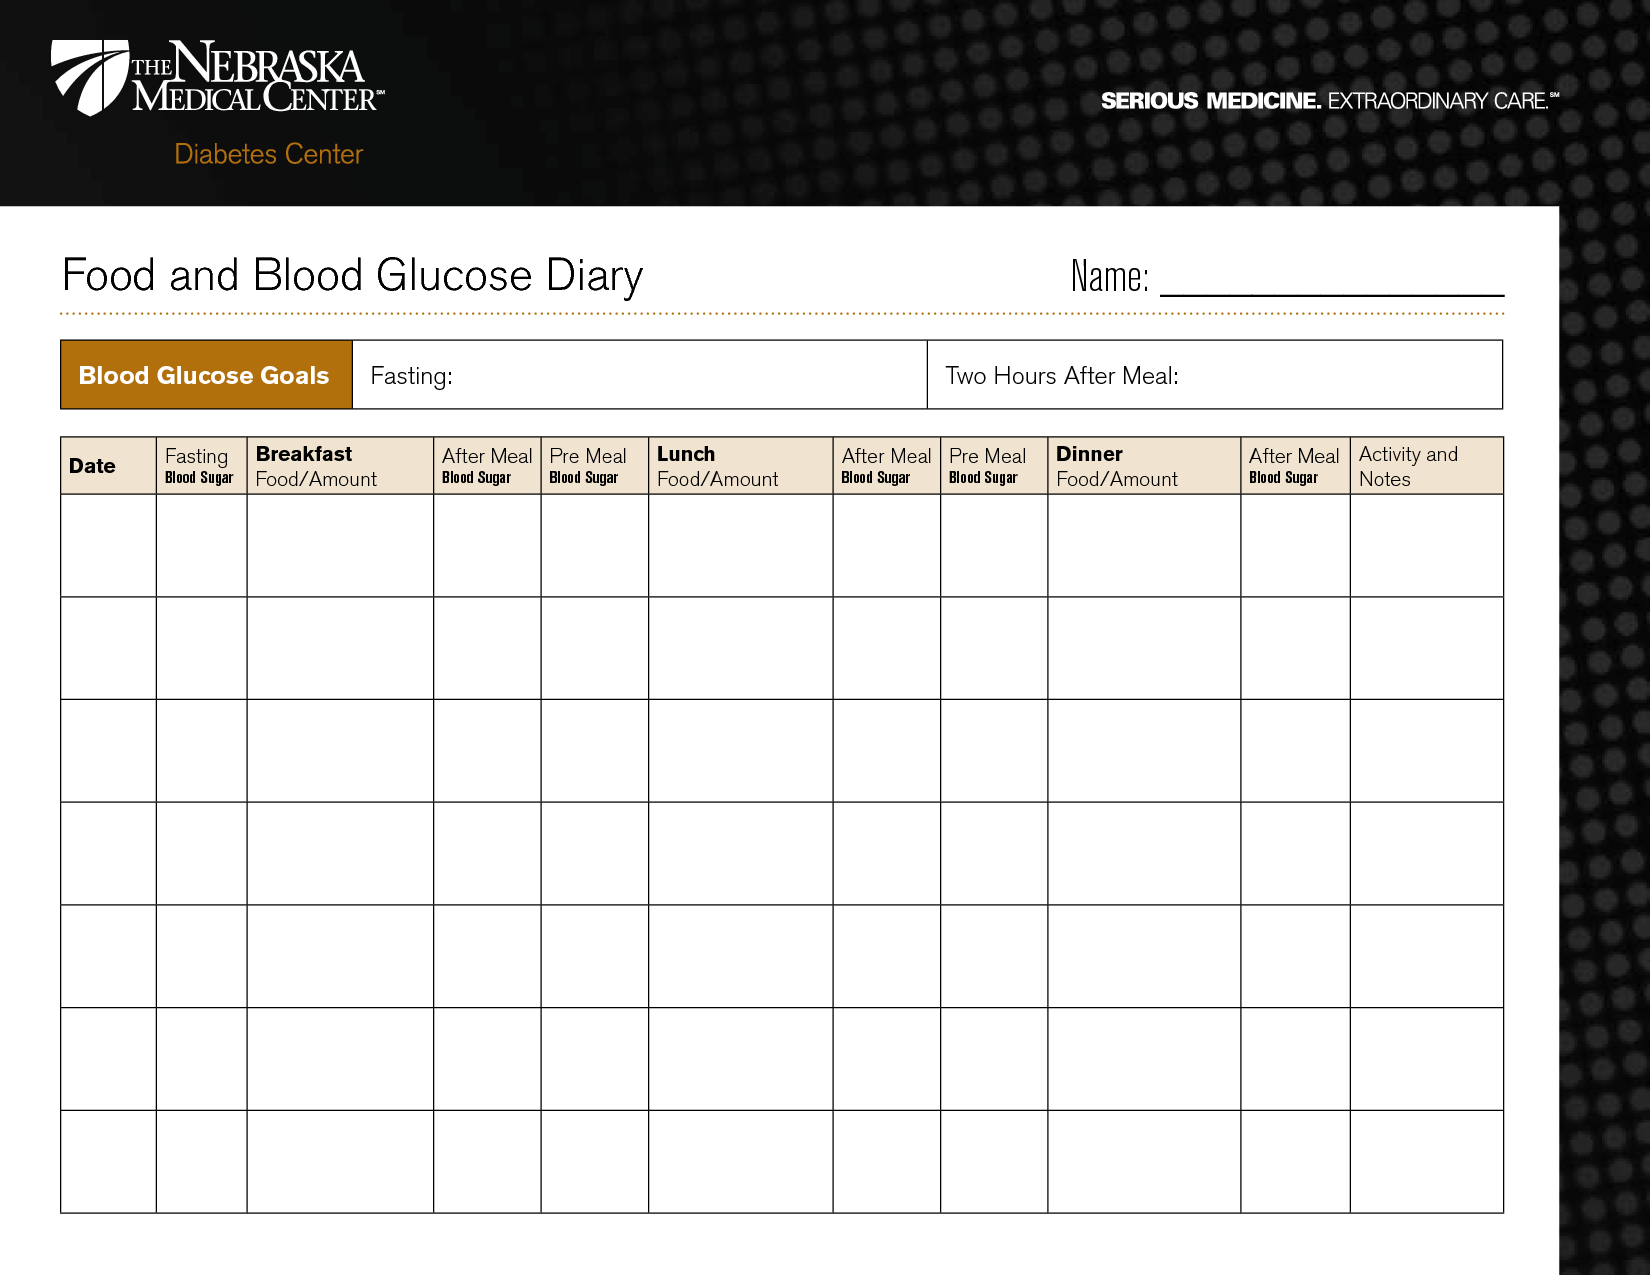 Diabetic Food Diary Template Printable  Food And Blood Glucose